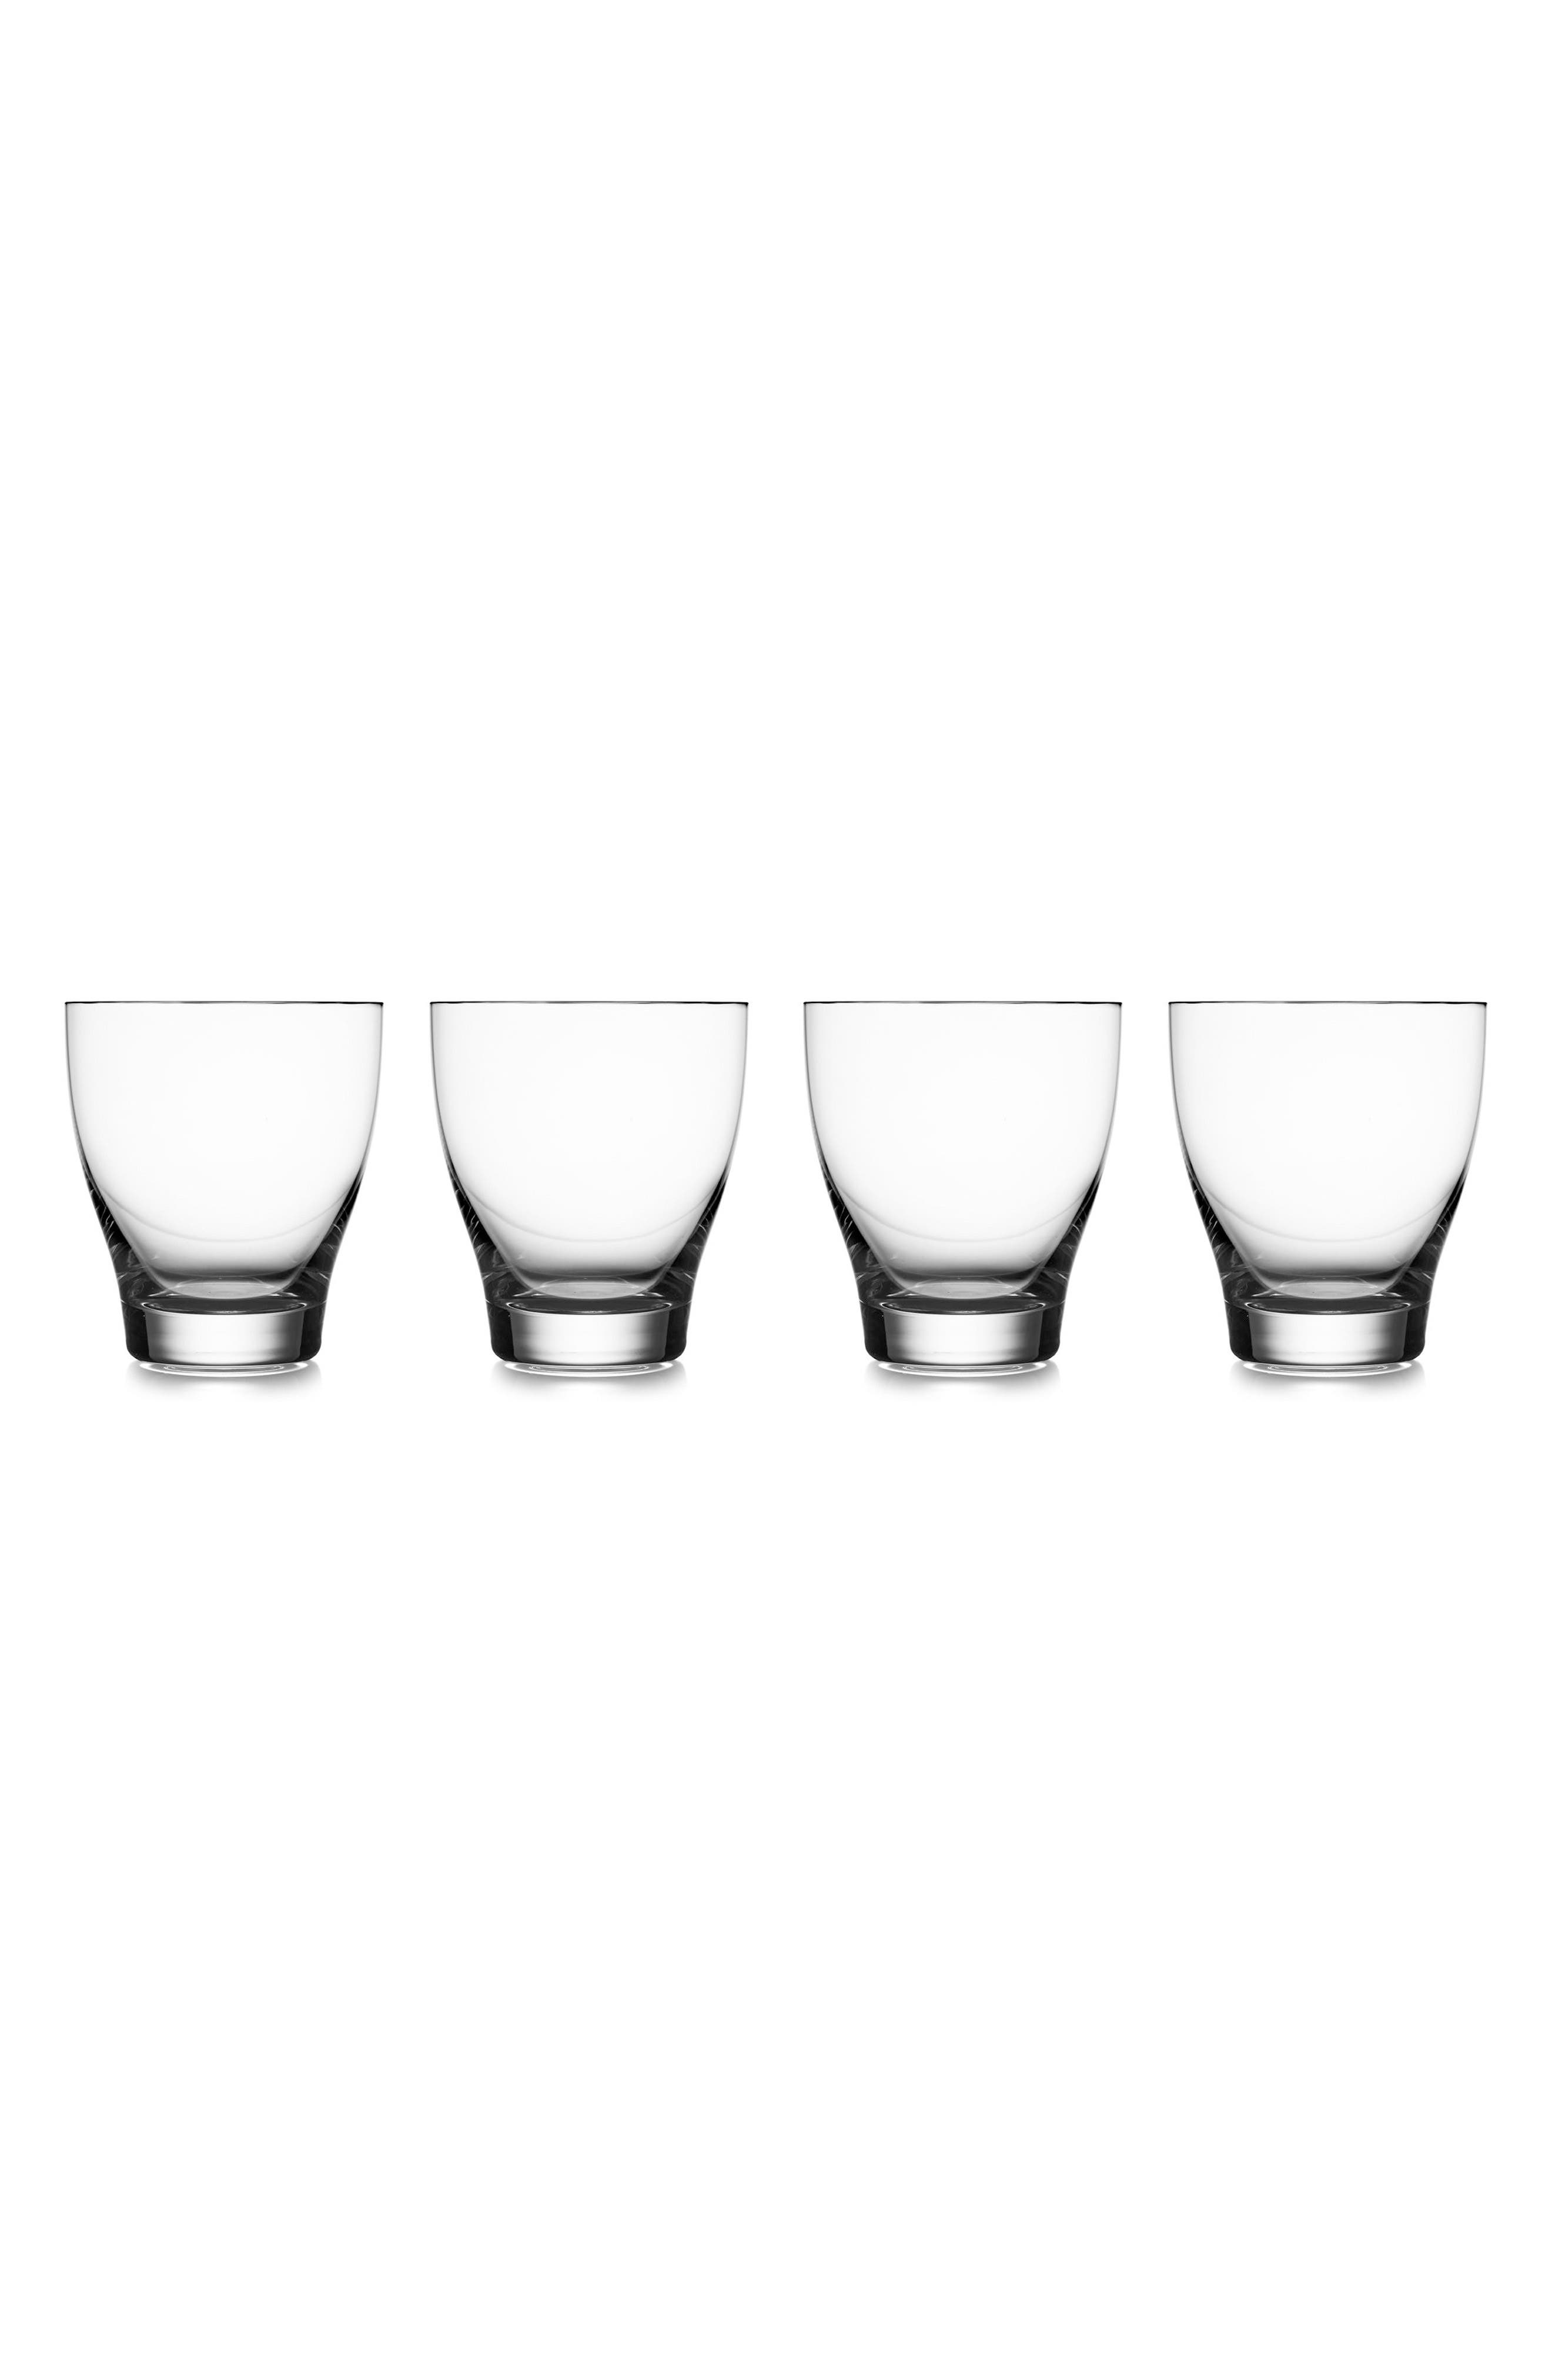 Vie Set of 4 Double Old Fashioned Glasses,                         Main,                         color, 100